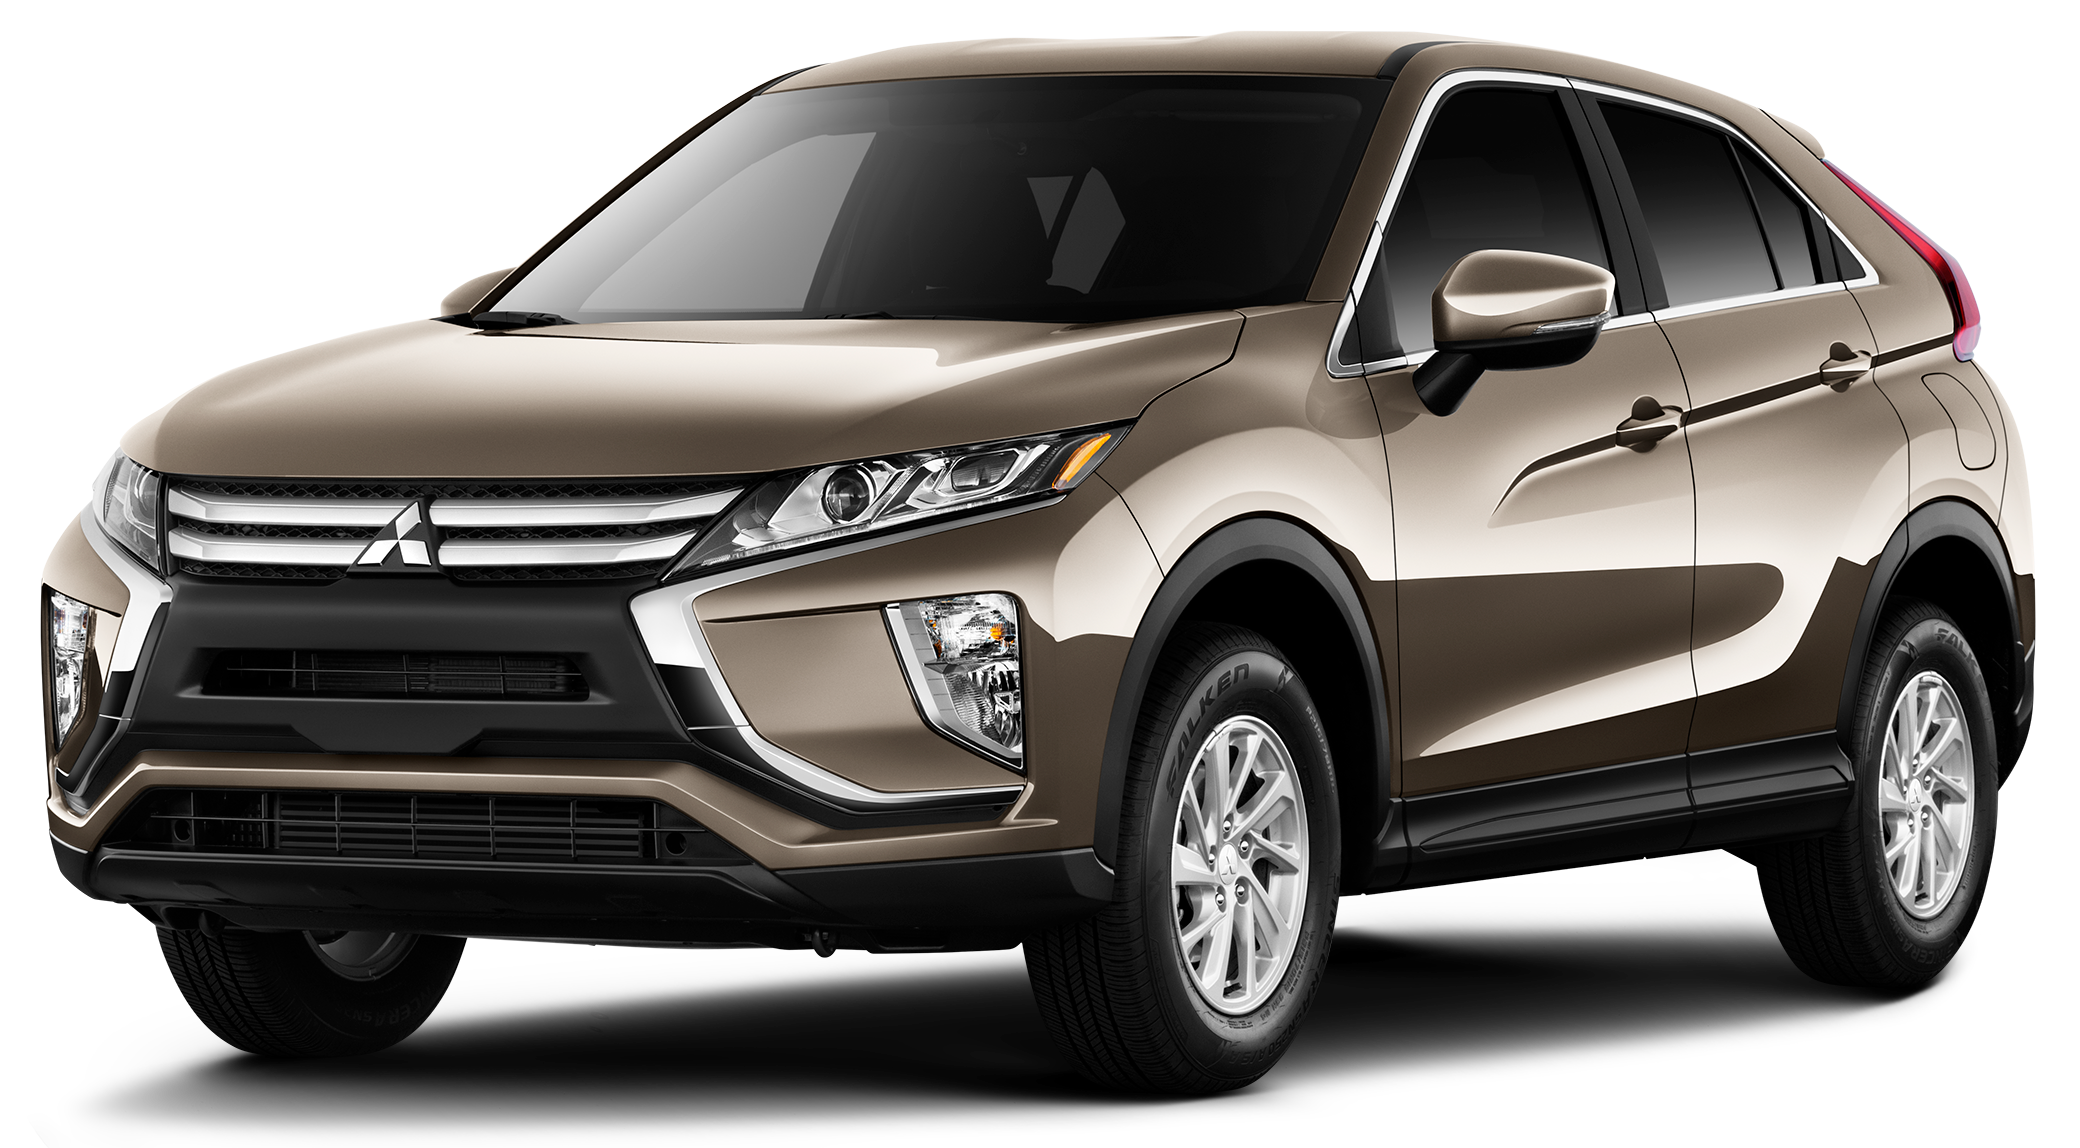 Lovely 2018 Mitsubishi Eclipse Cross CUV